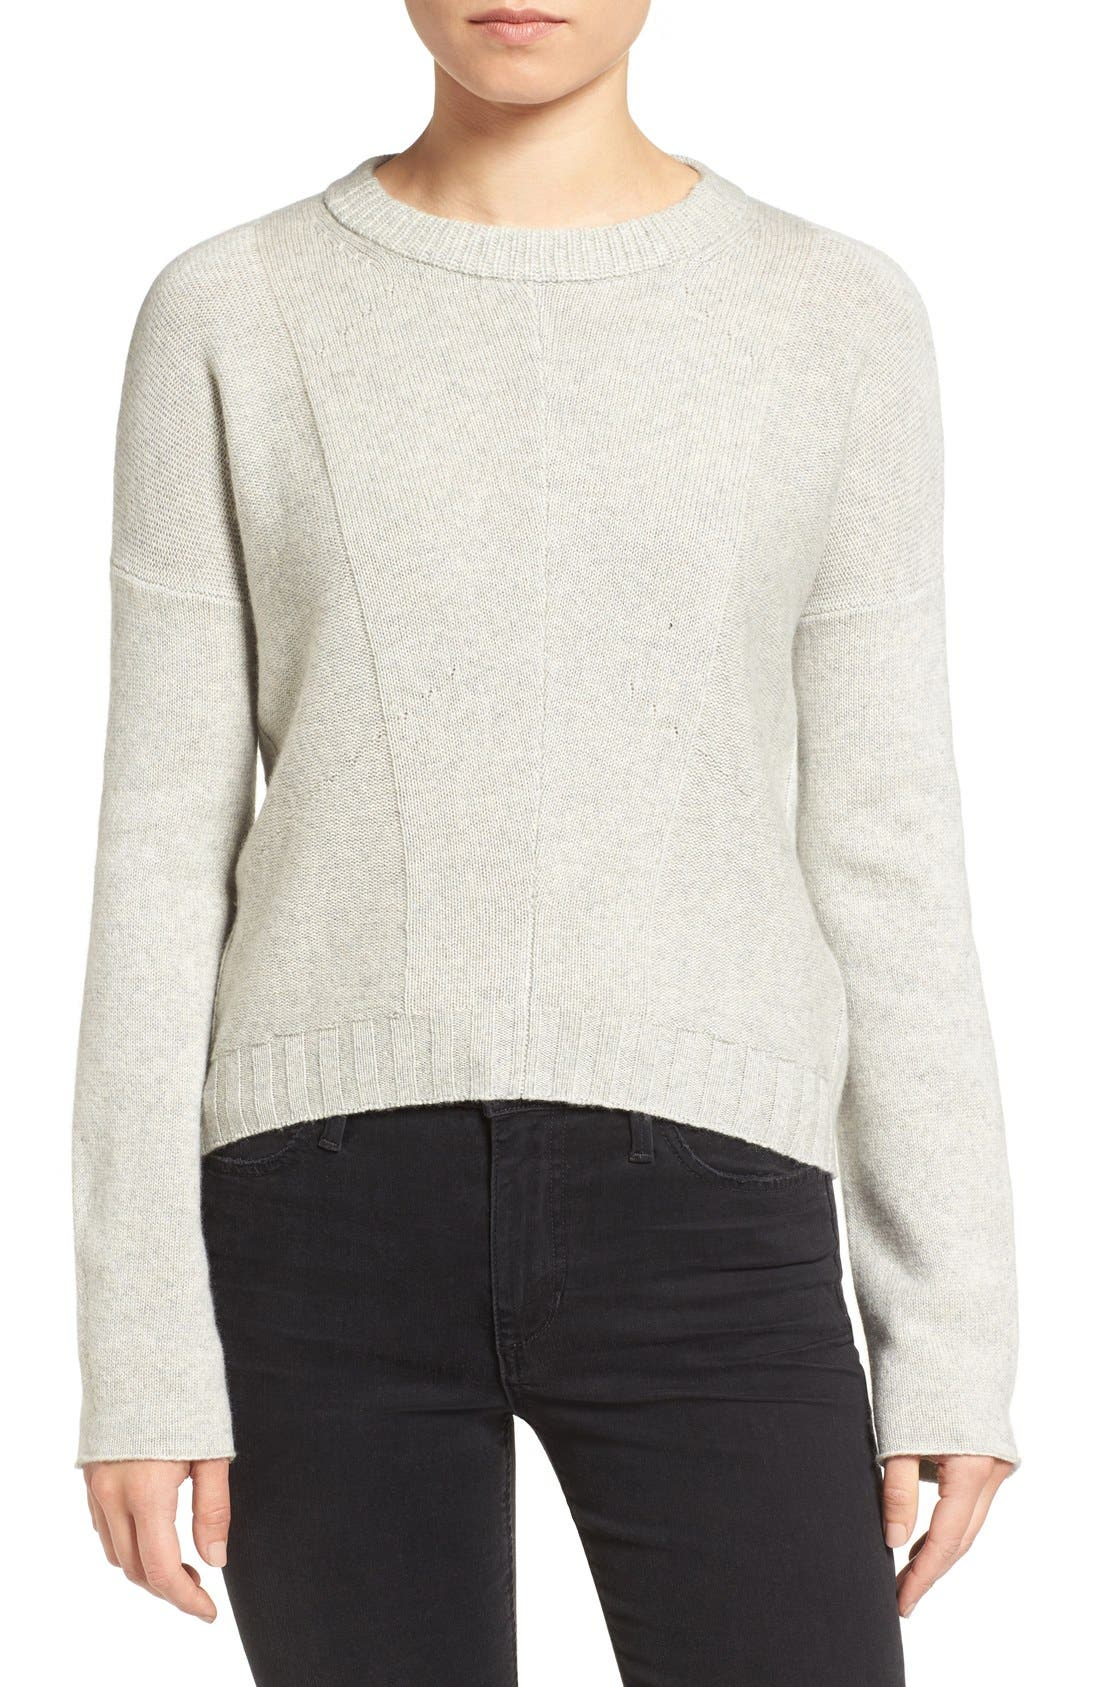 Alternate Image 1 Selected - Rails Joanna Wool & Cashmere Sweater